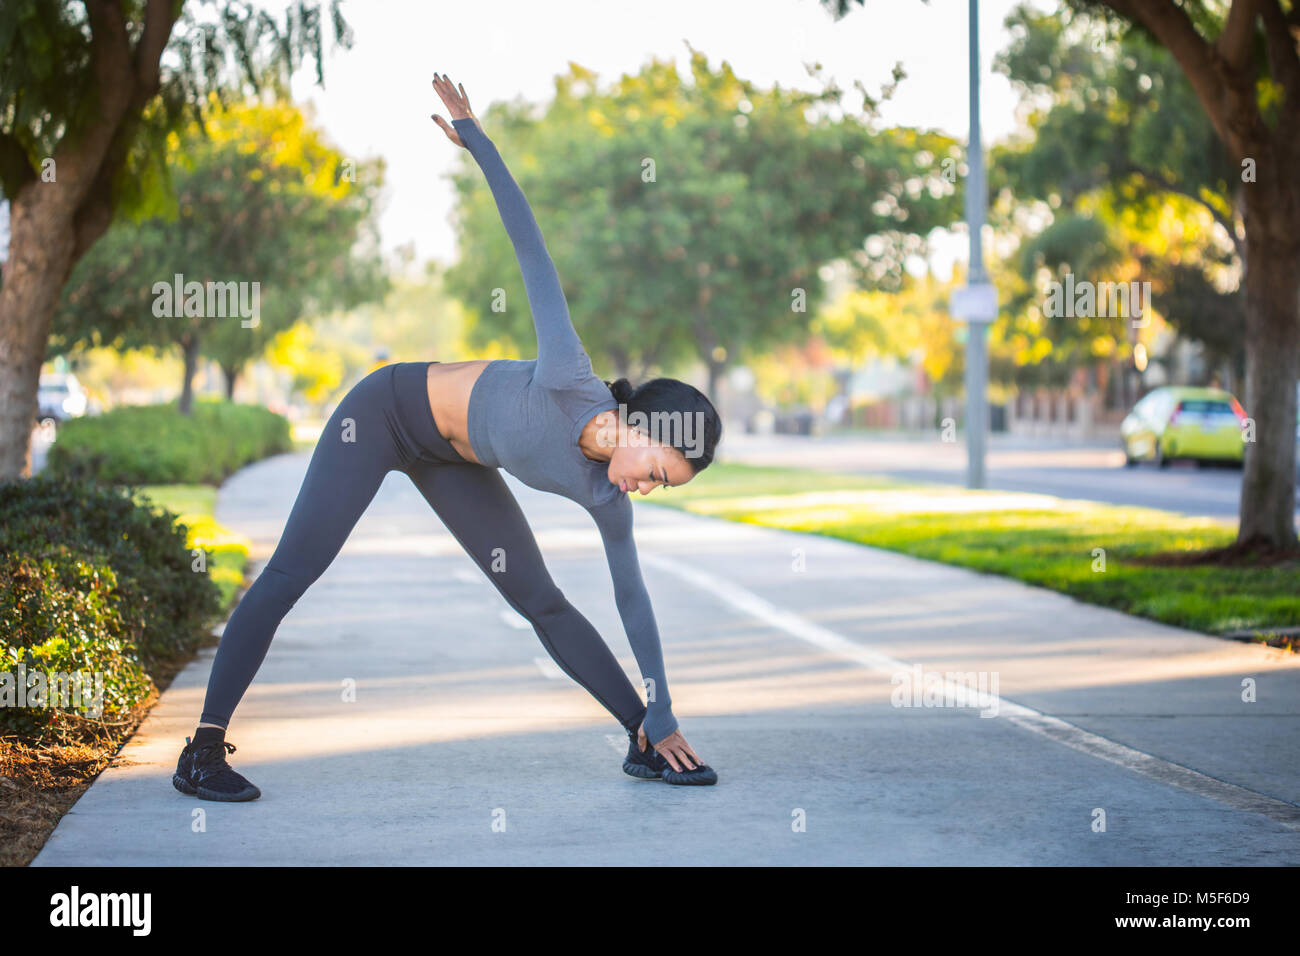 Young African American girl in workout clothes stretching on a b - Stock Image